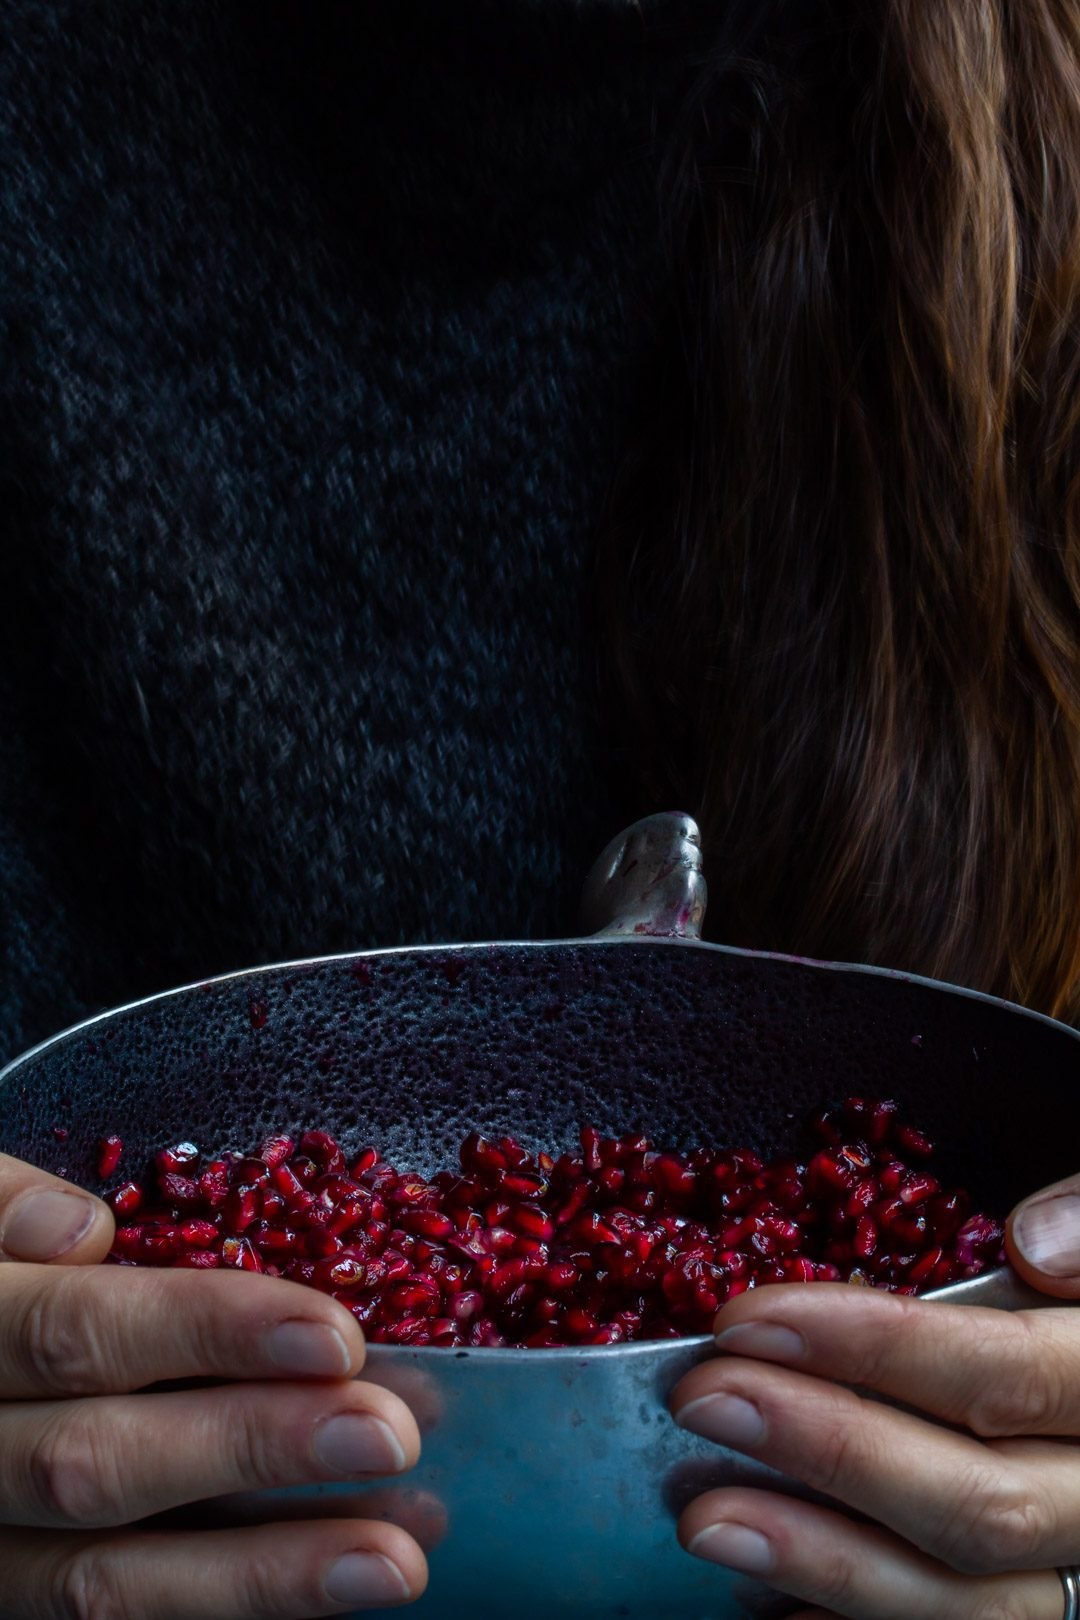 hands holding a metal bowl of pomegranate arils used to make grenadine